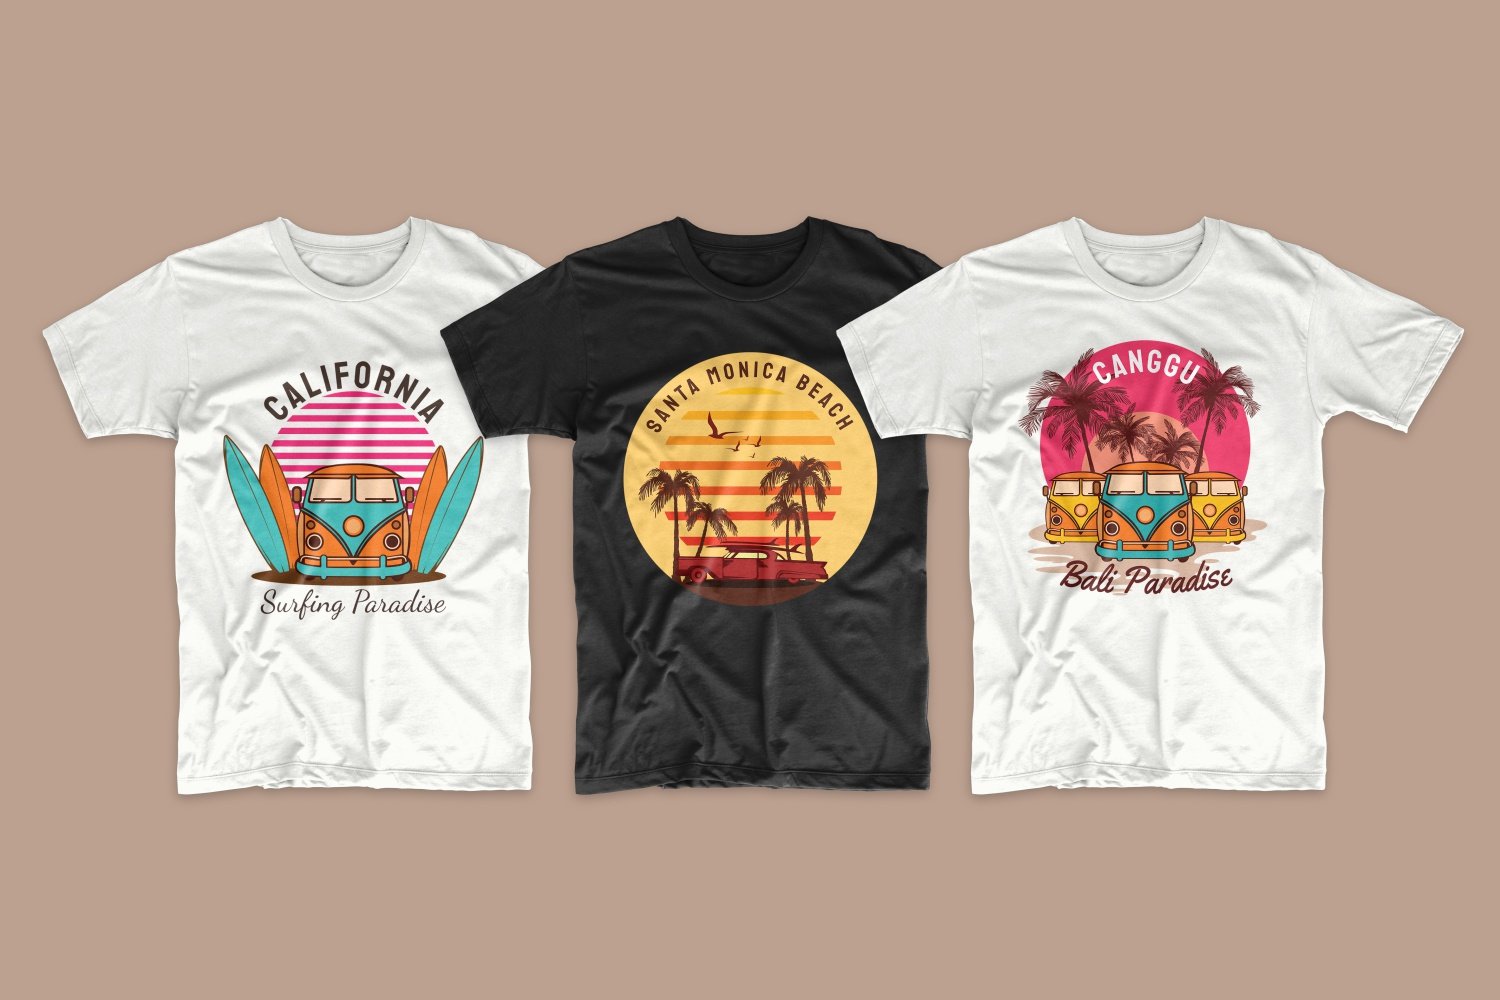 50 Surfing T-shirt Designs - 1 5